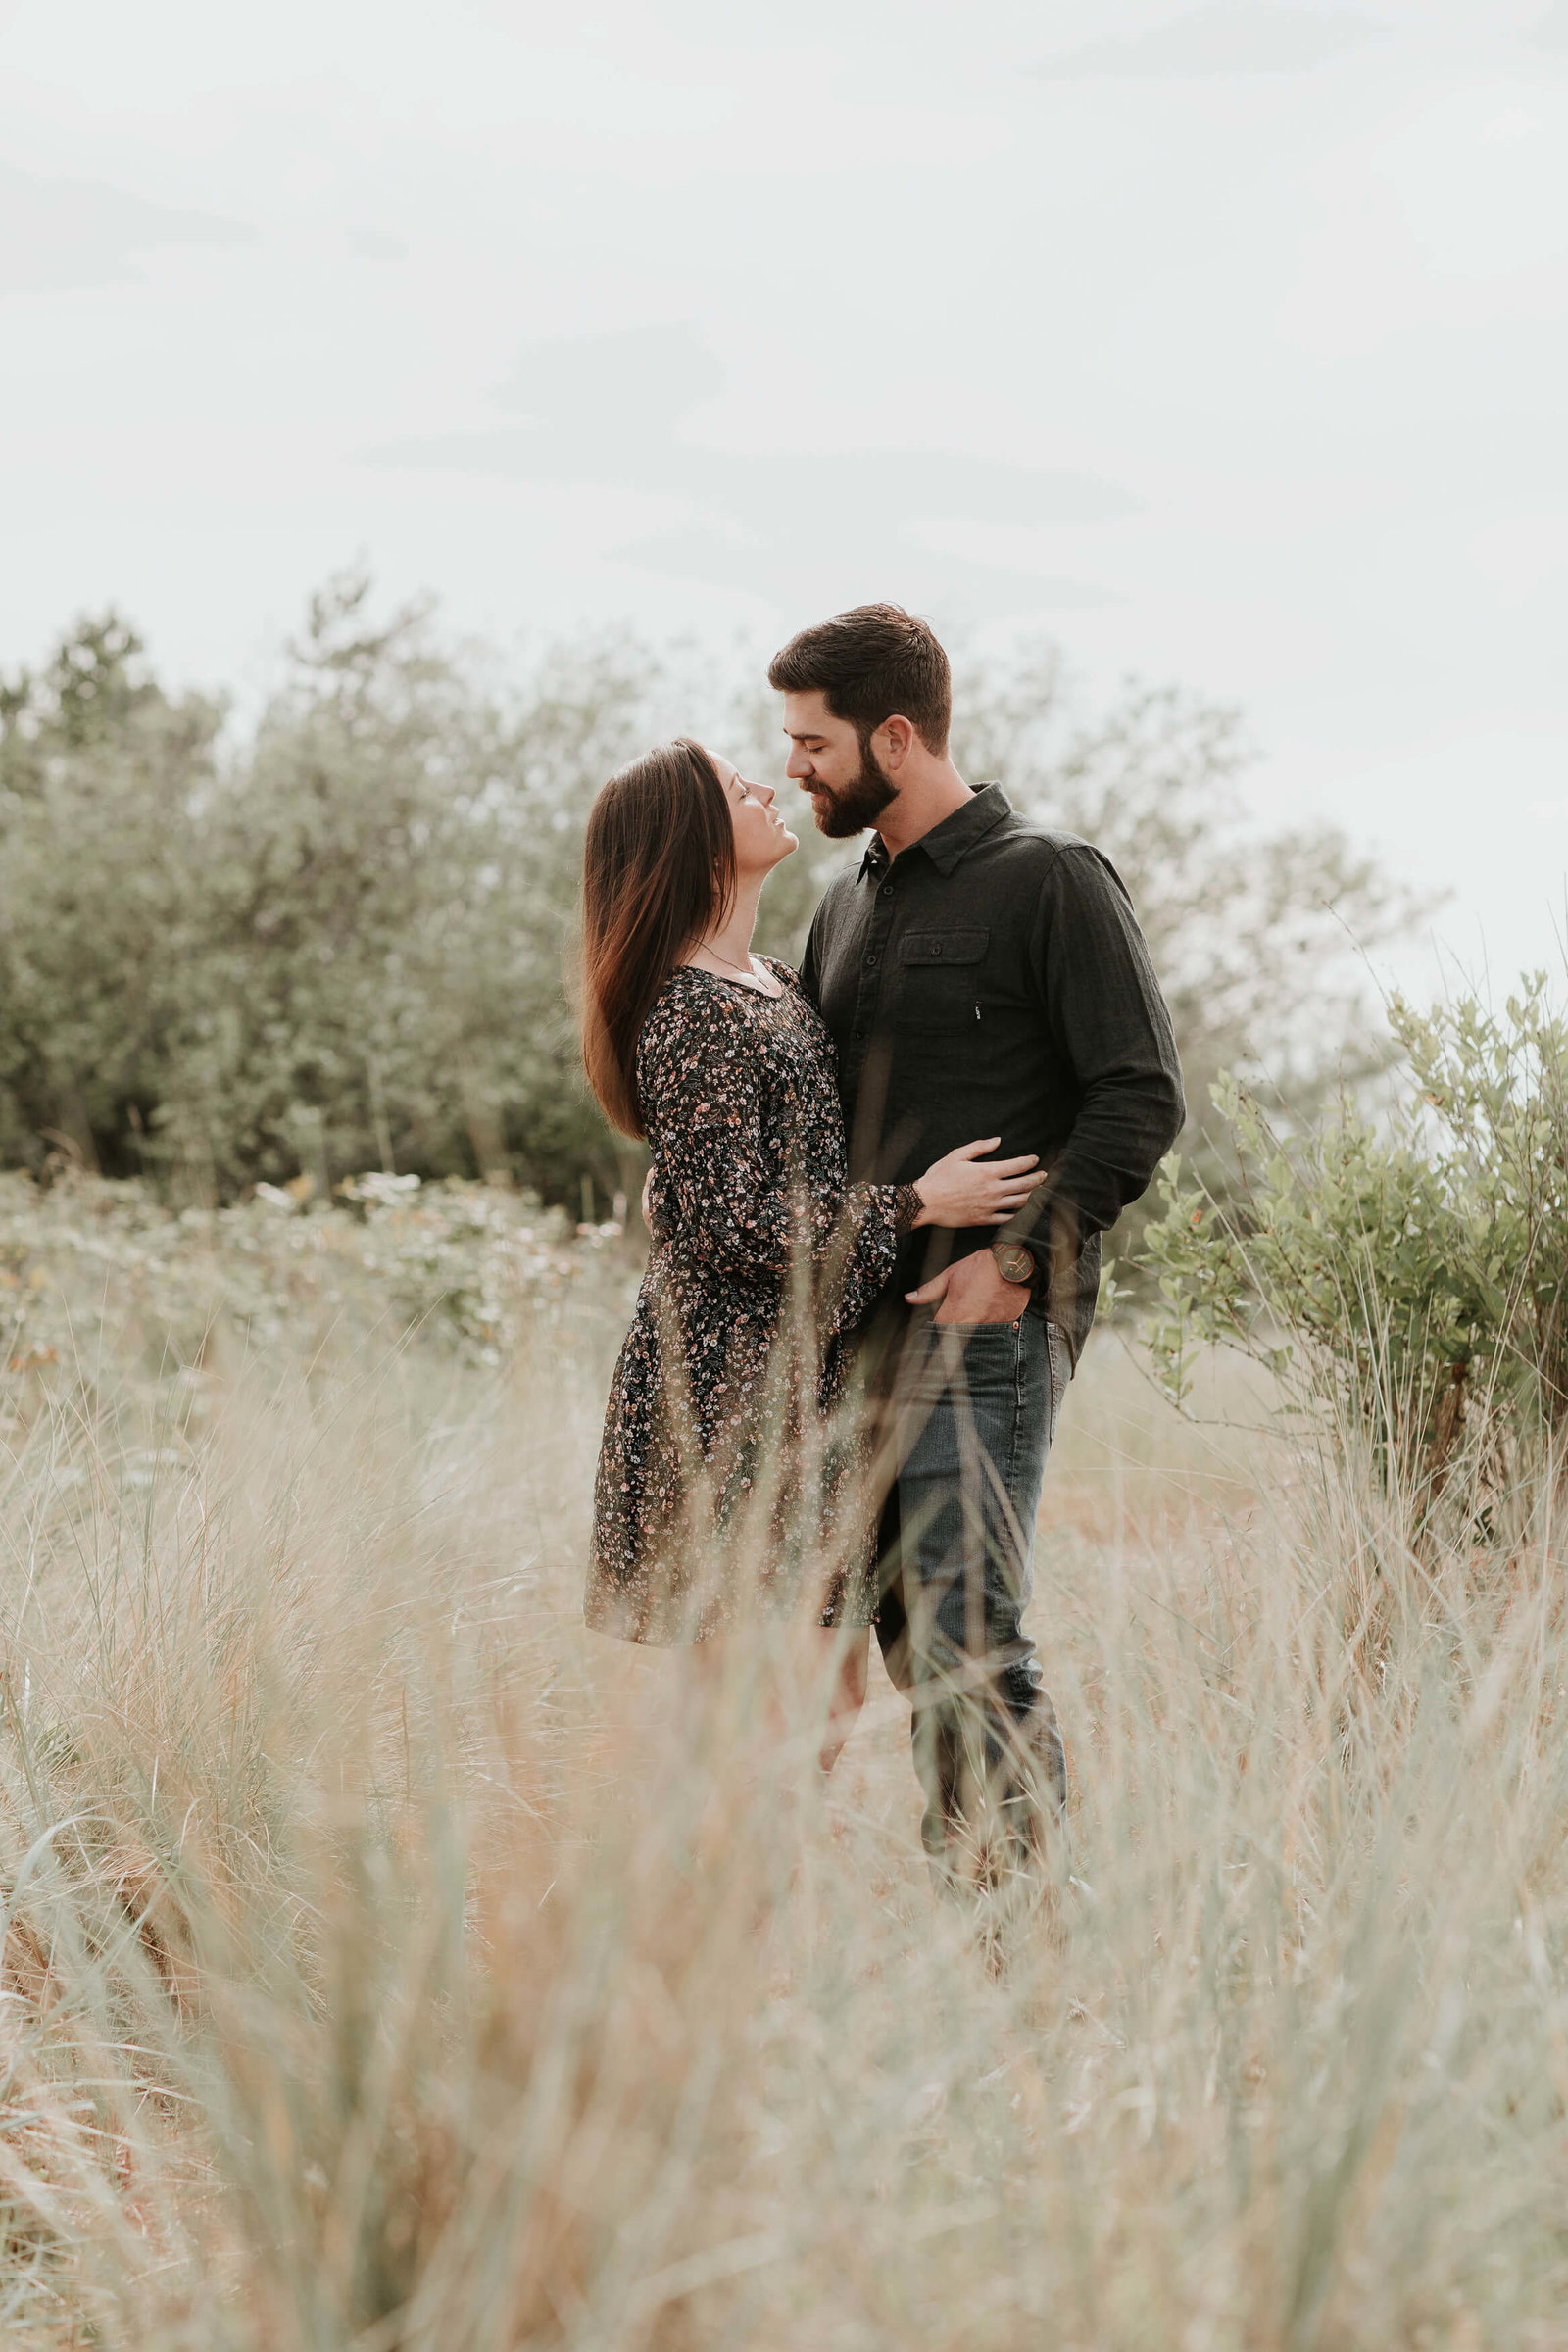 Discovery-Park-Engagement-Chelsey+Troy-by-Adina-Preston-Photography-2019-16